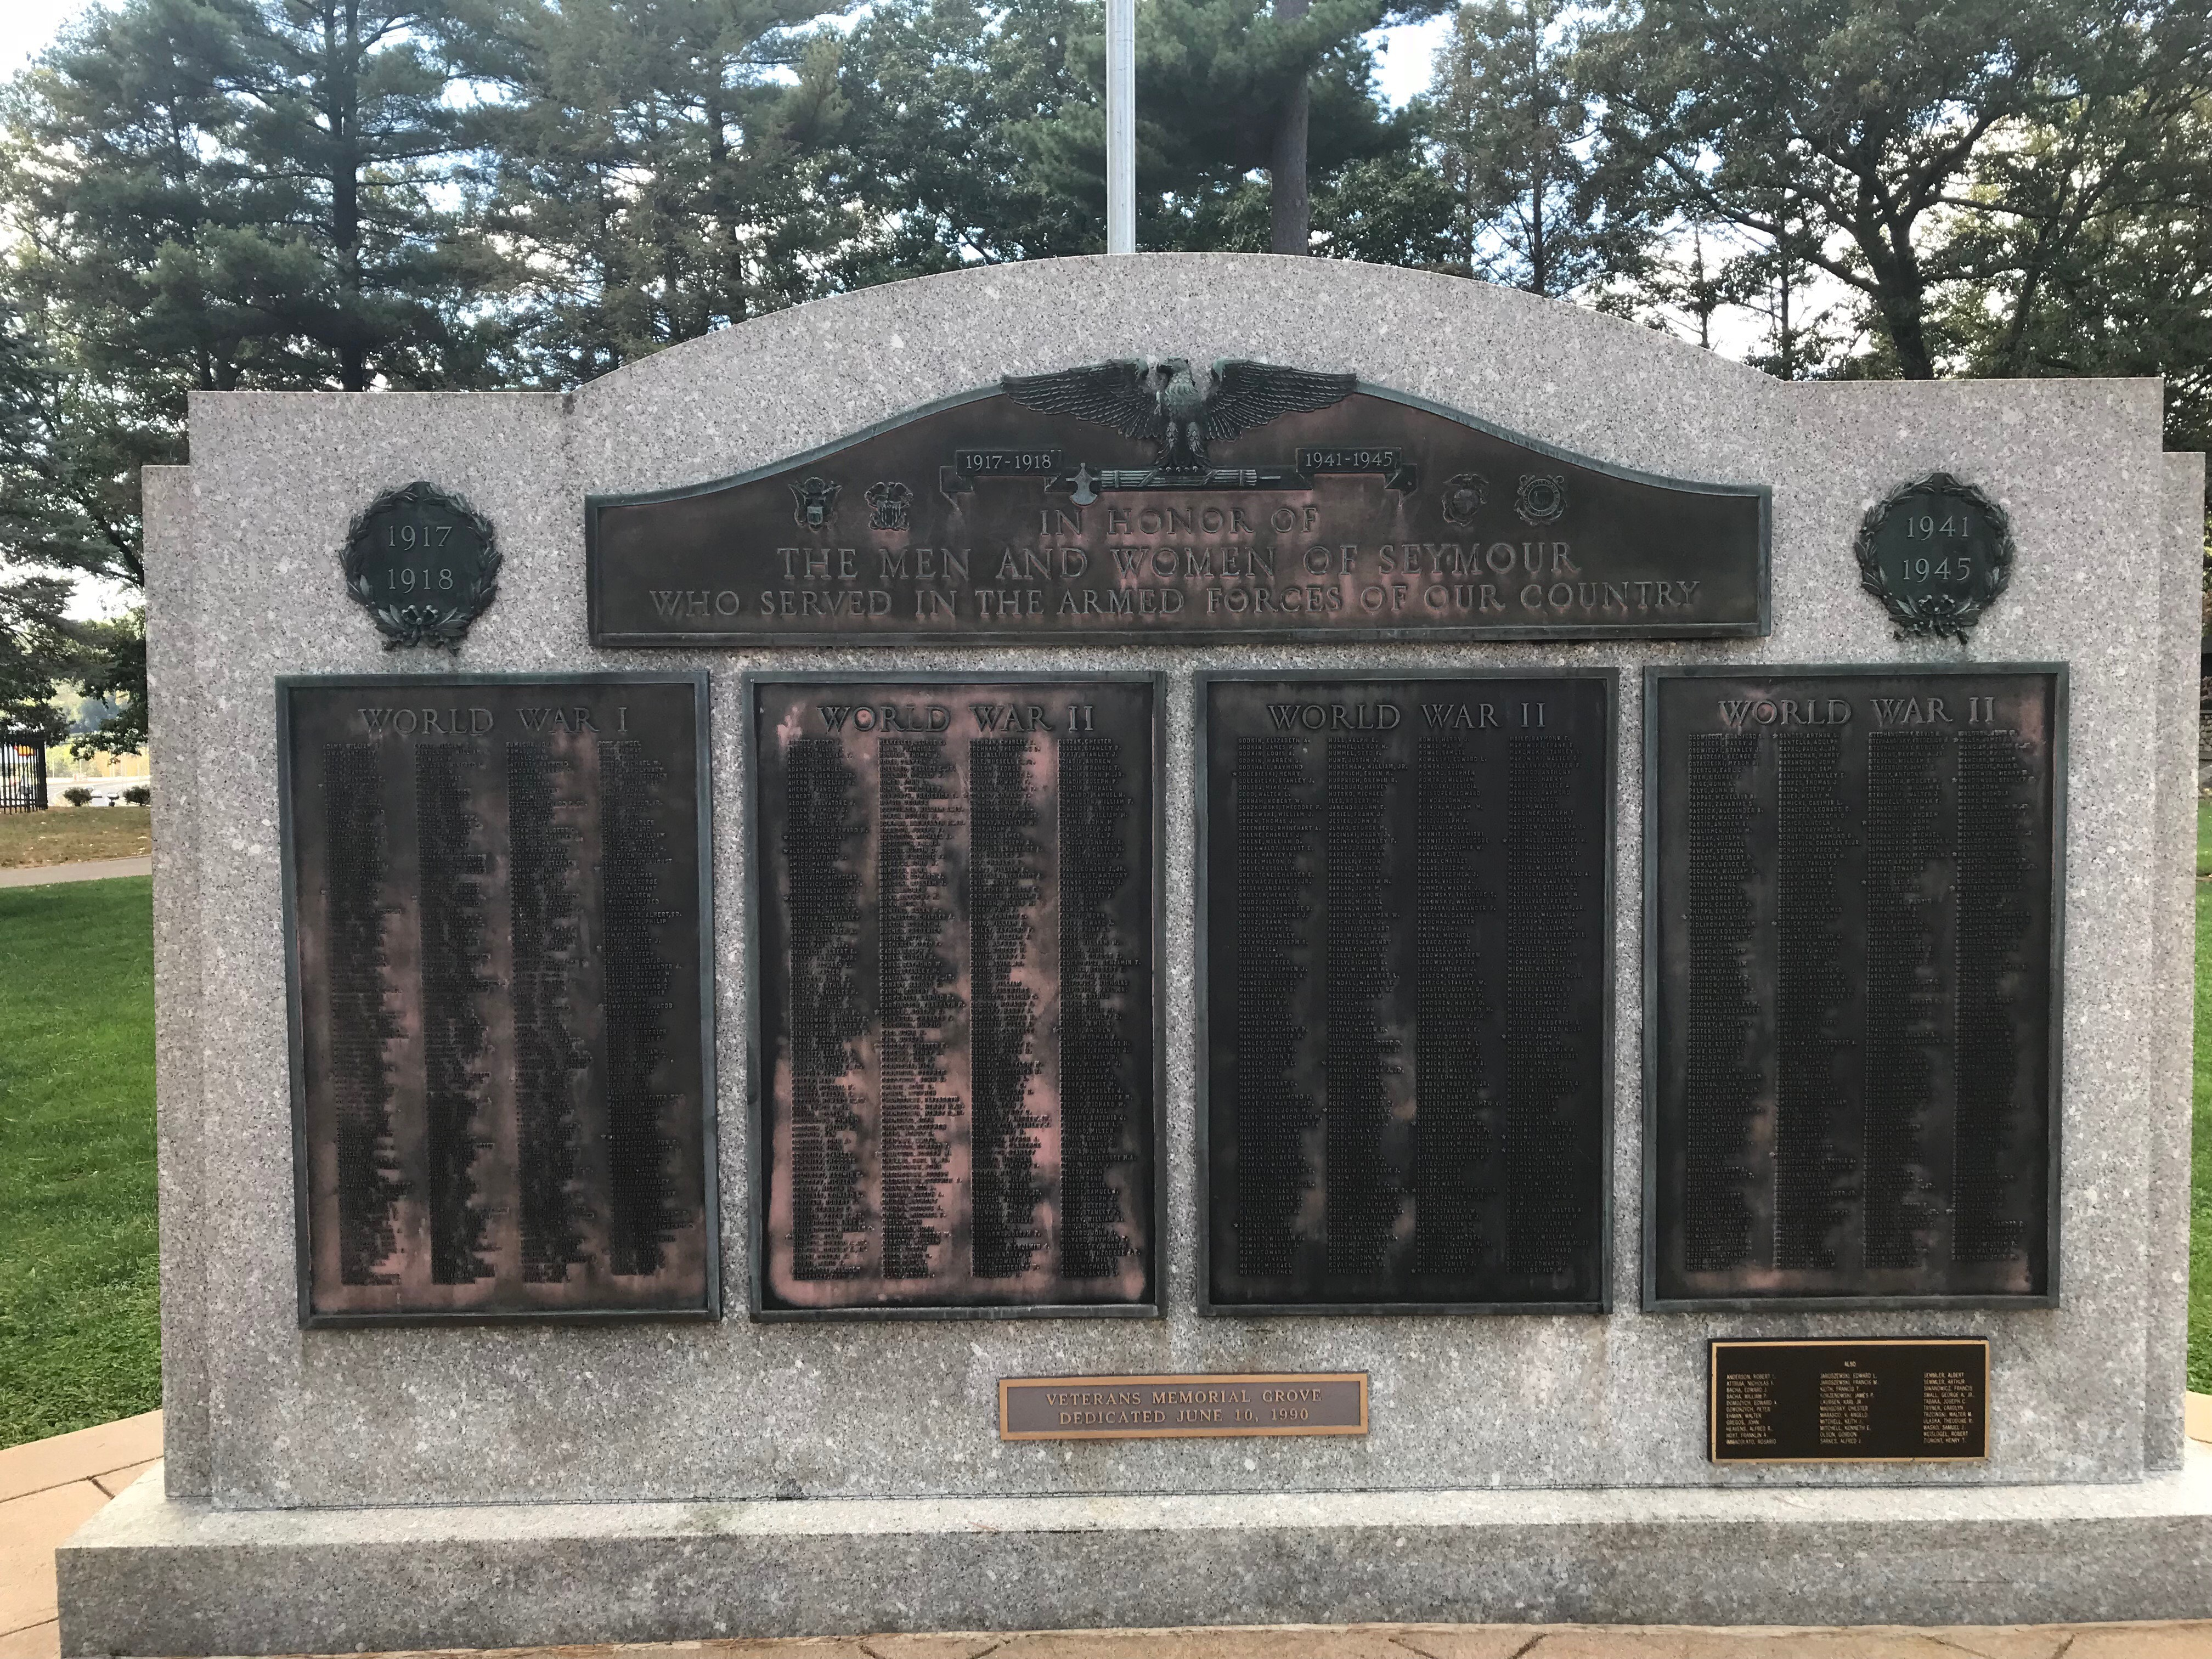 Seymour's World War I monument includes all wars